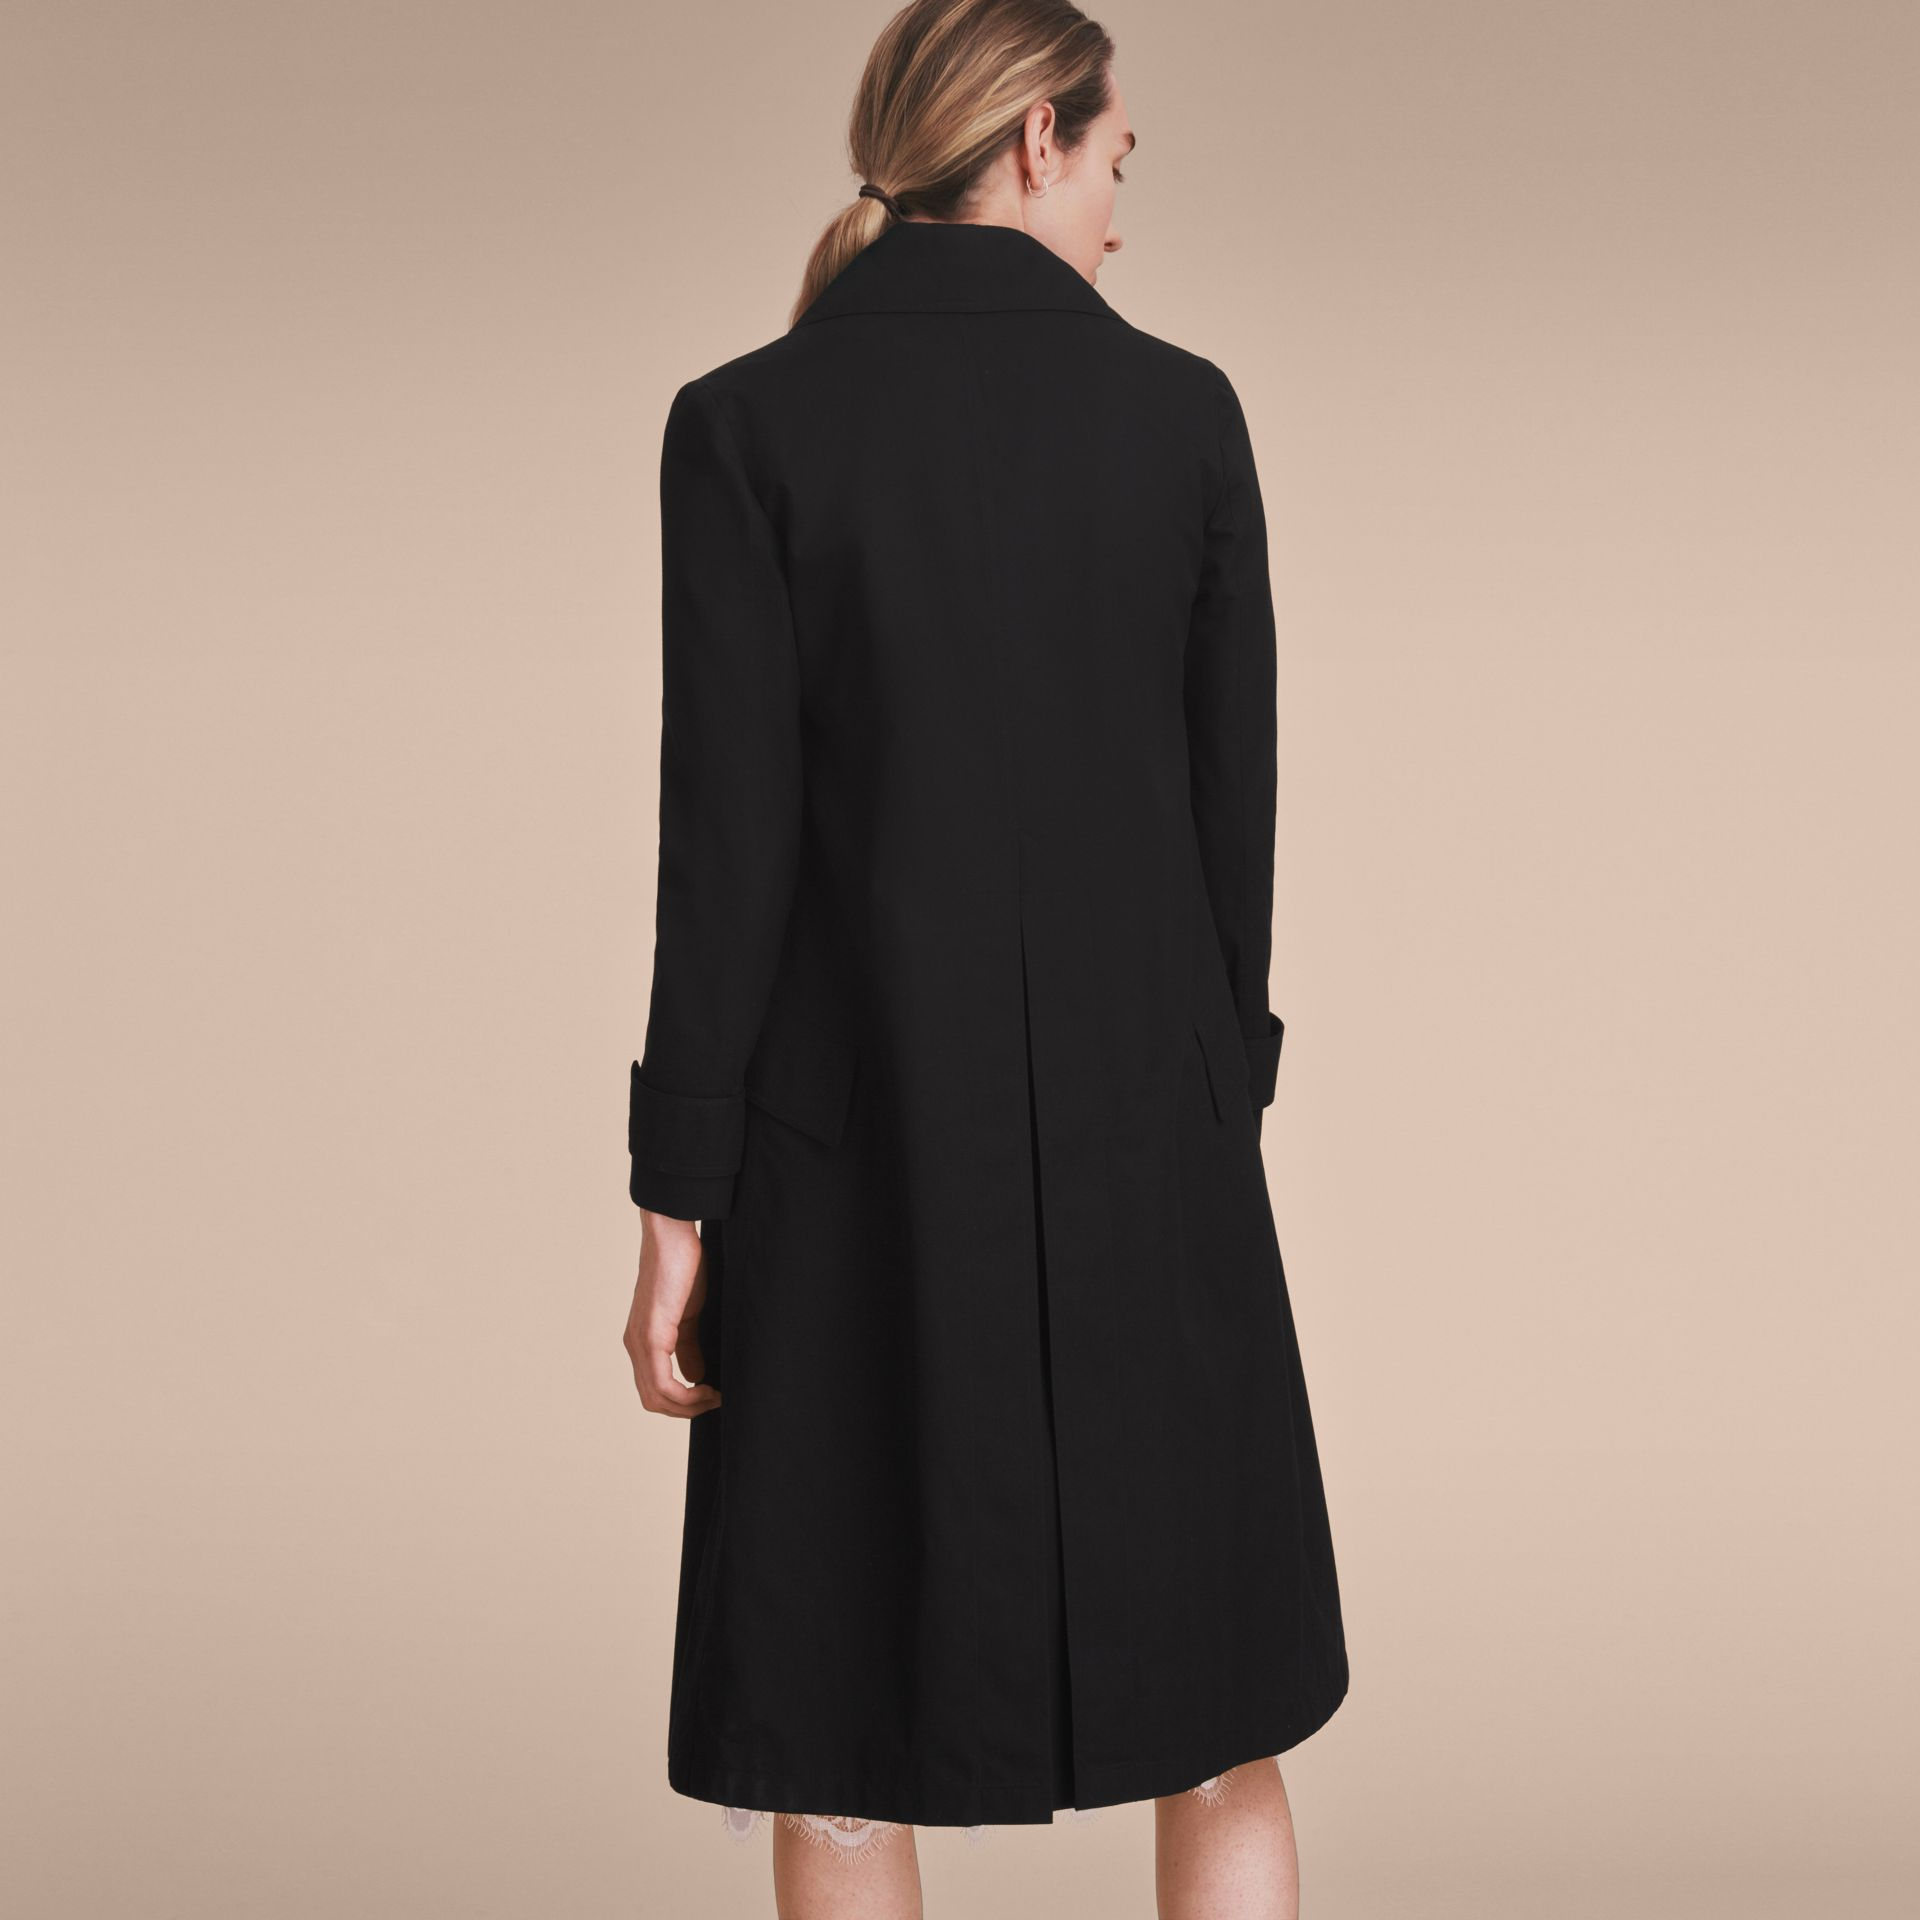 Cotton Gabardine Coat with Curved Closure - Women | Burberry - gallery image 3